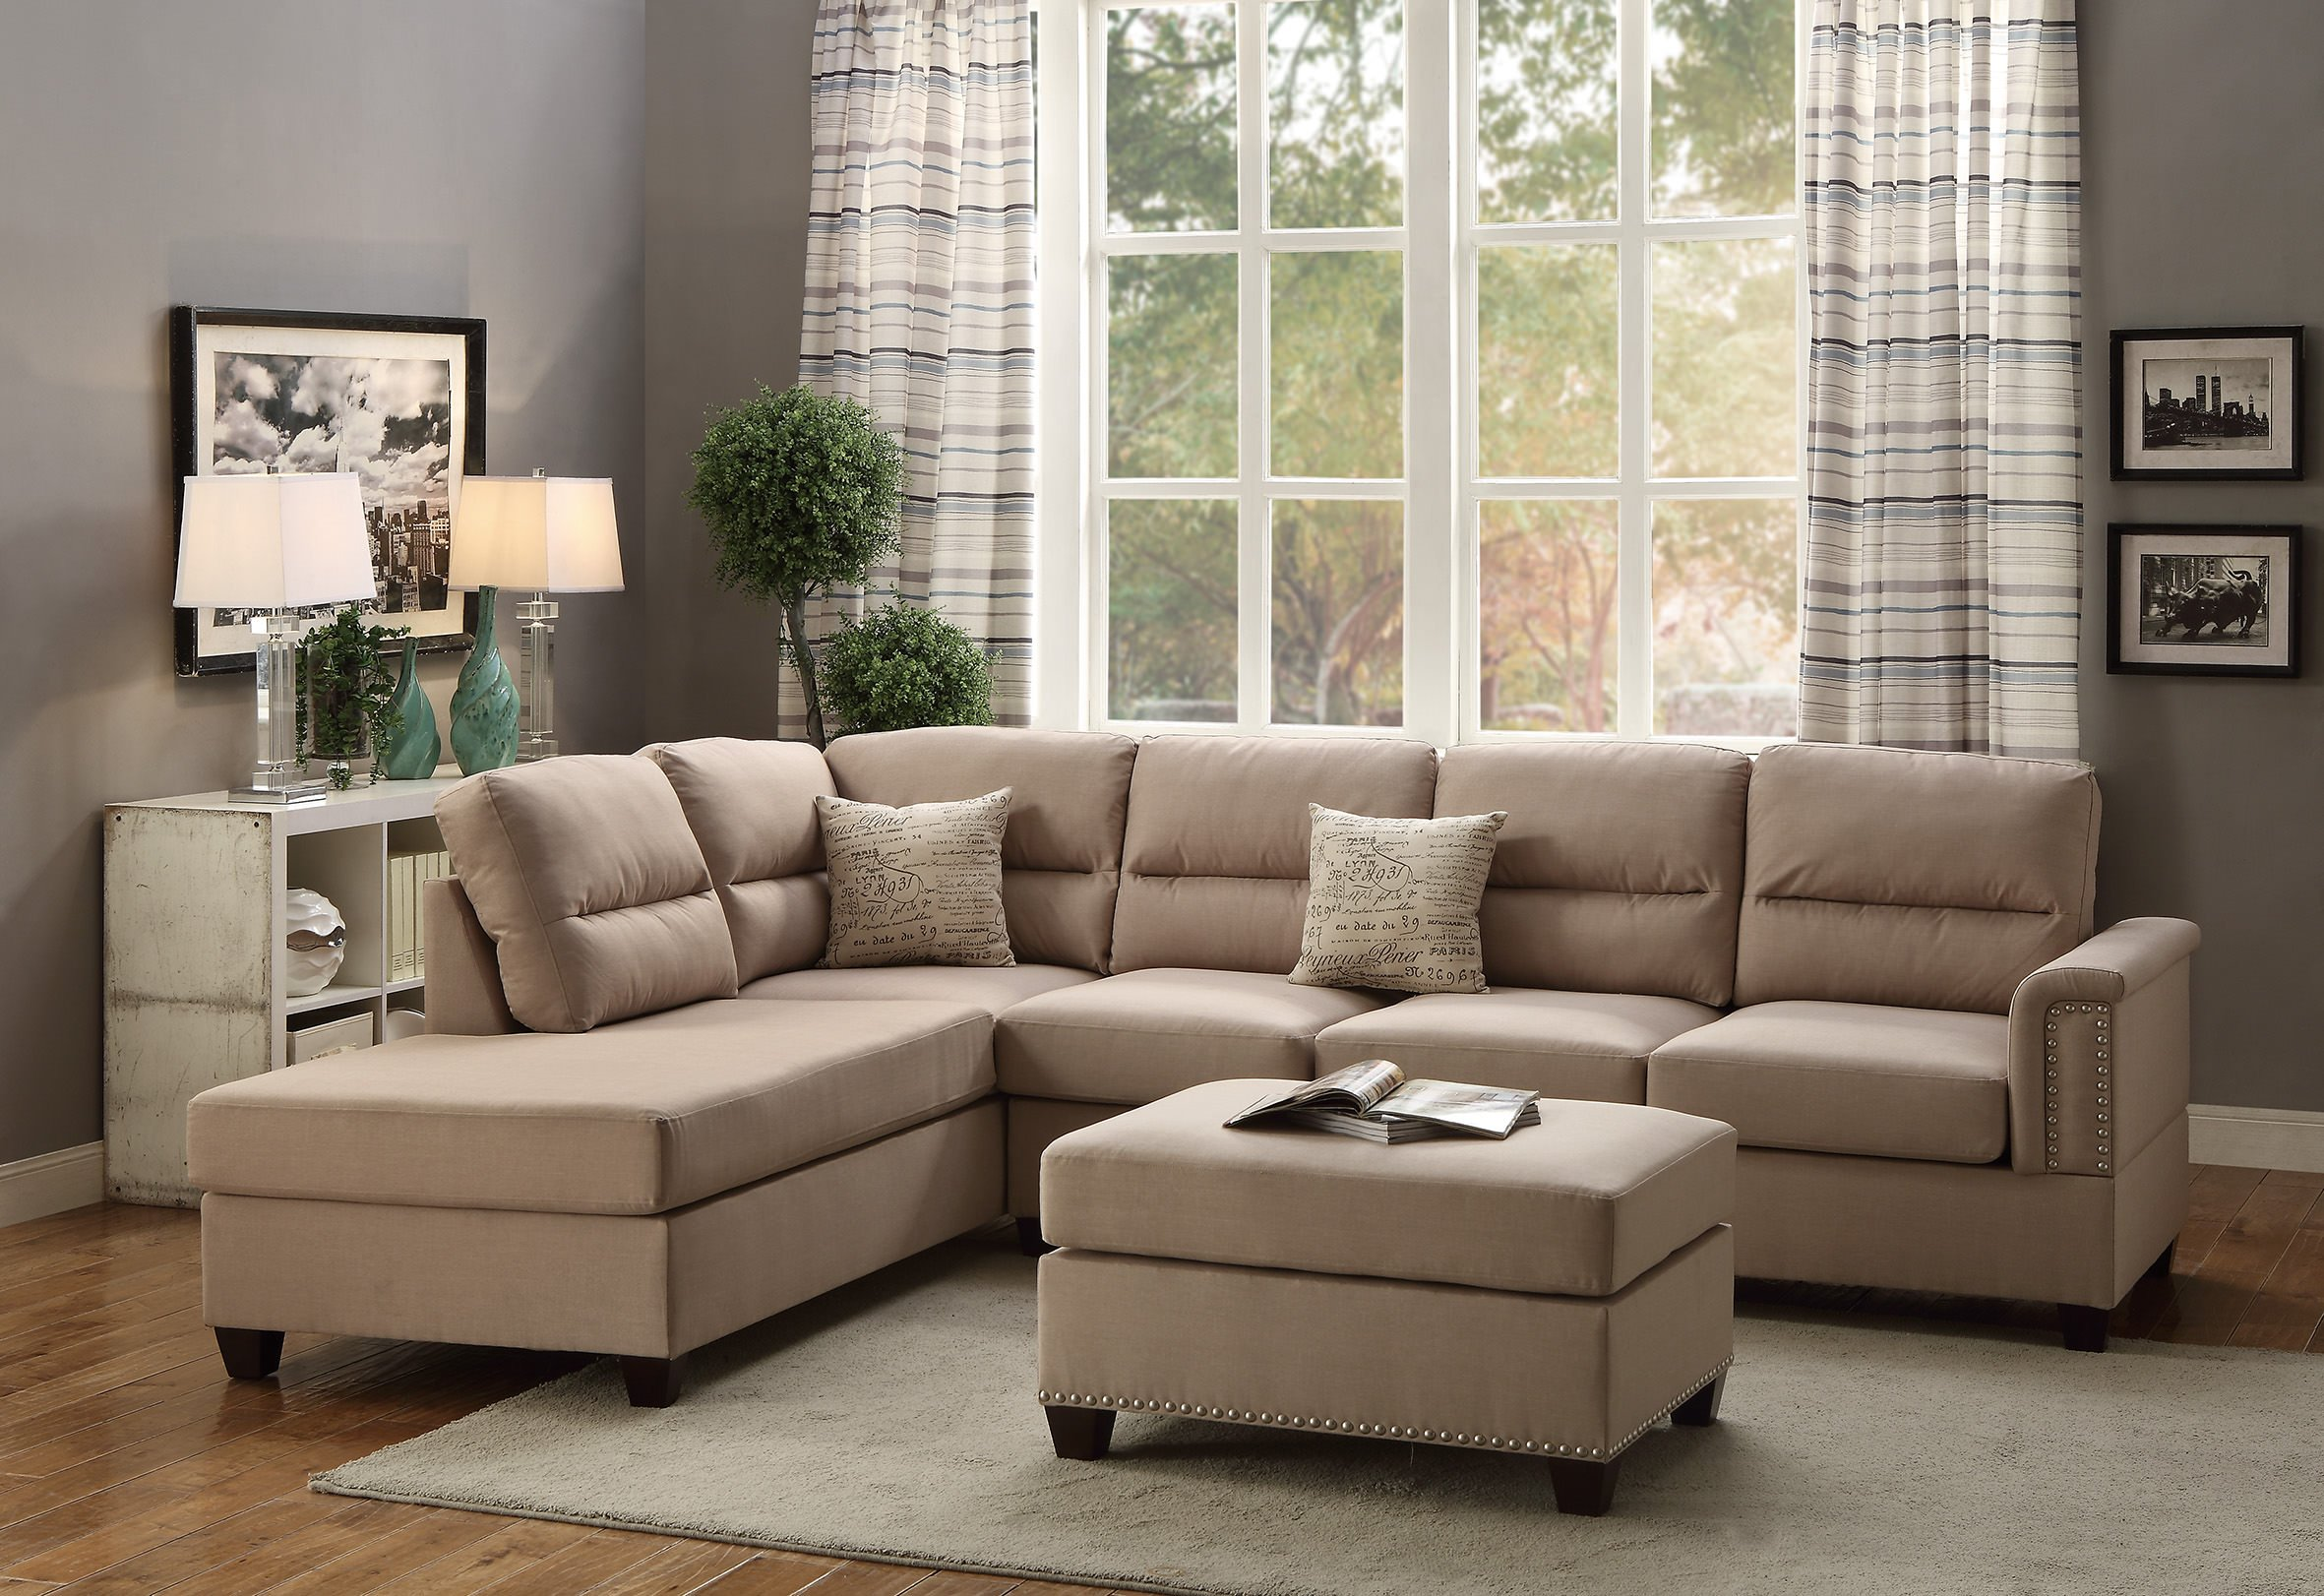 Marvelous F7614 Sand 2 Pcs Sectional Sofa Set By Poundex Inzonedesignstudio Interior Chair Design Inzonedesignstudiocom